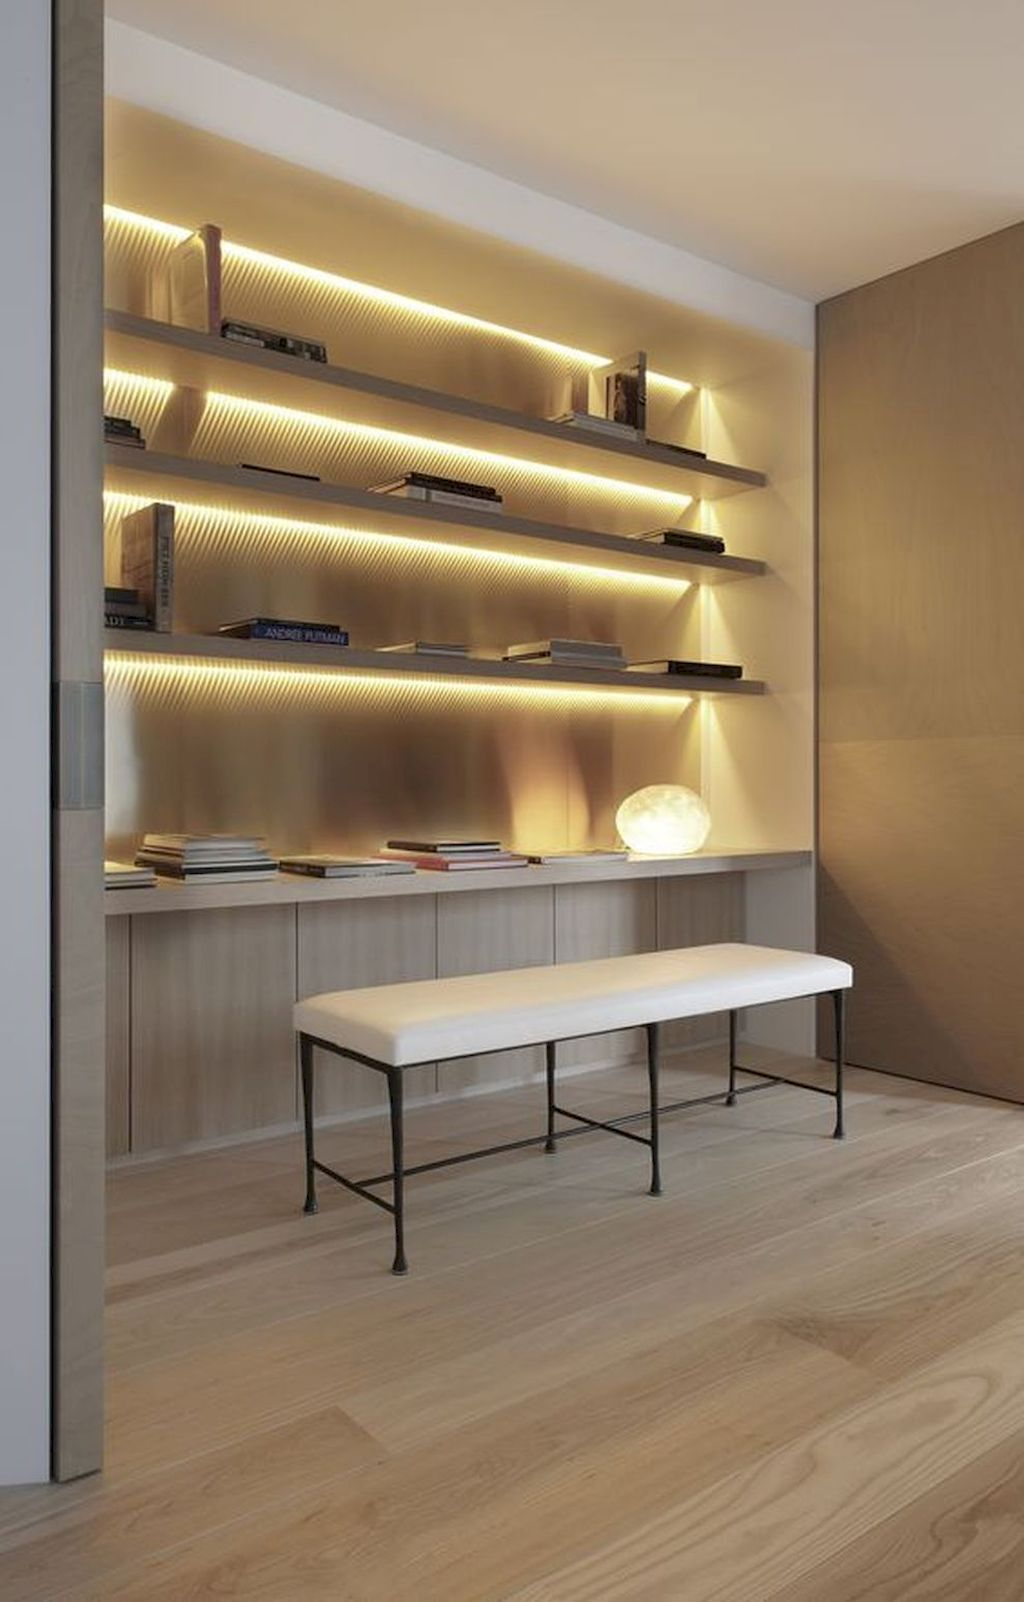 Picket Flooring Can Actually Give A Dwelling A Coronary Heart Floor Design Interior Lighting Floating Shelves With Lights